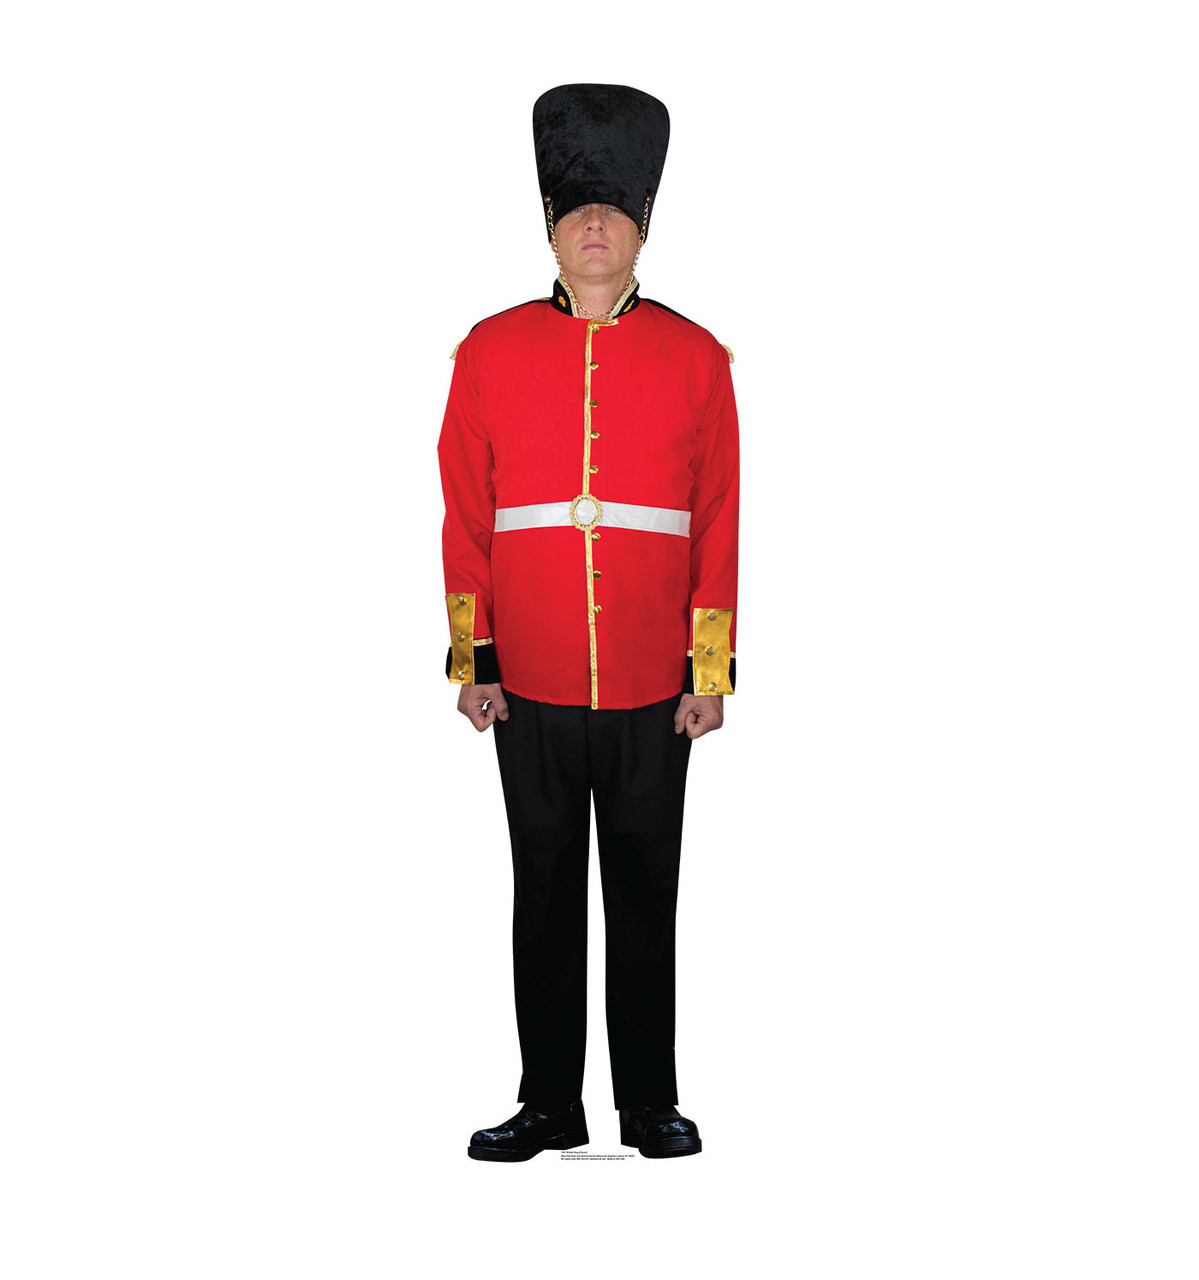 Life-size British Royal Guard Cardboard Standup